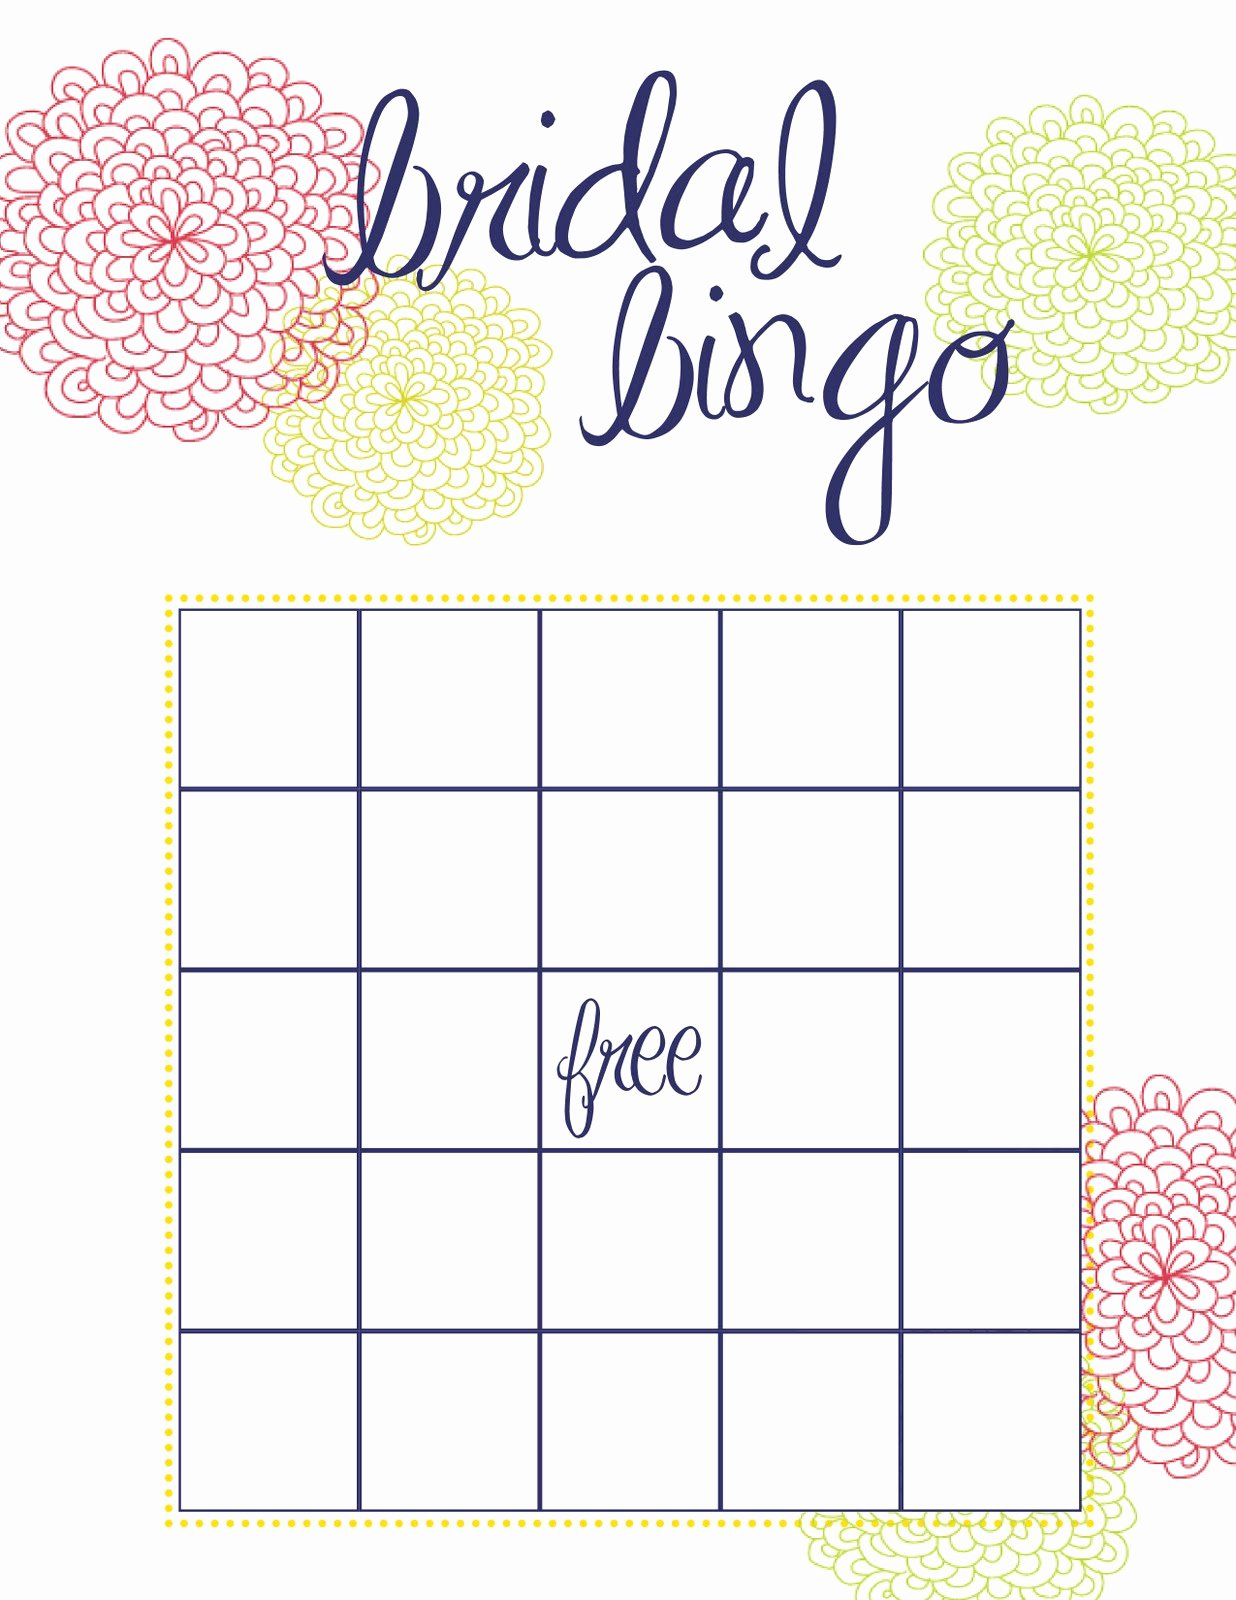 Bridal Shower Bingo Template Free Luxury How to Throw the Best Bridal Shower Pretty Happy Love